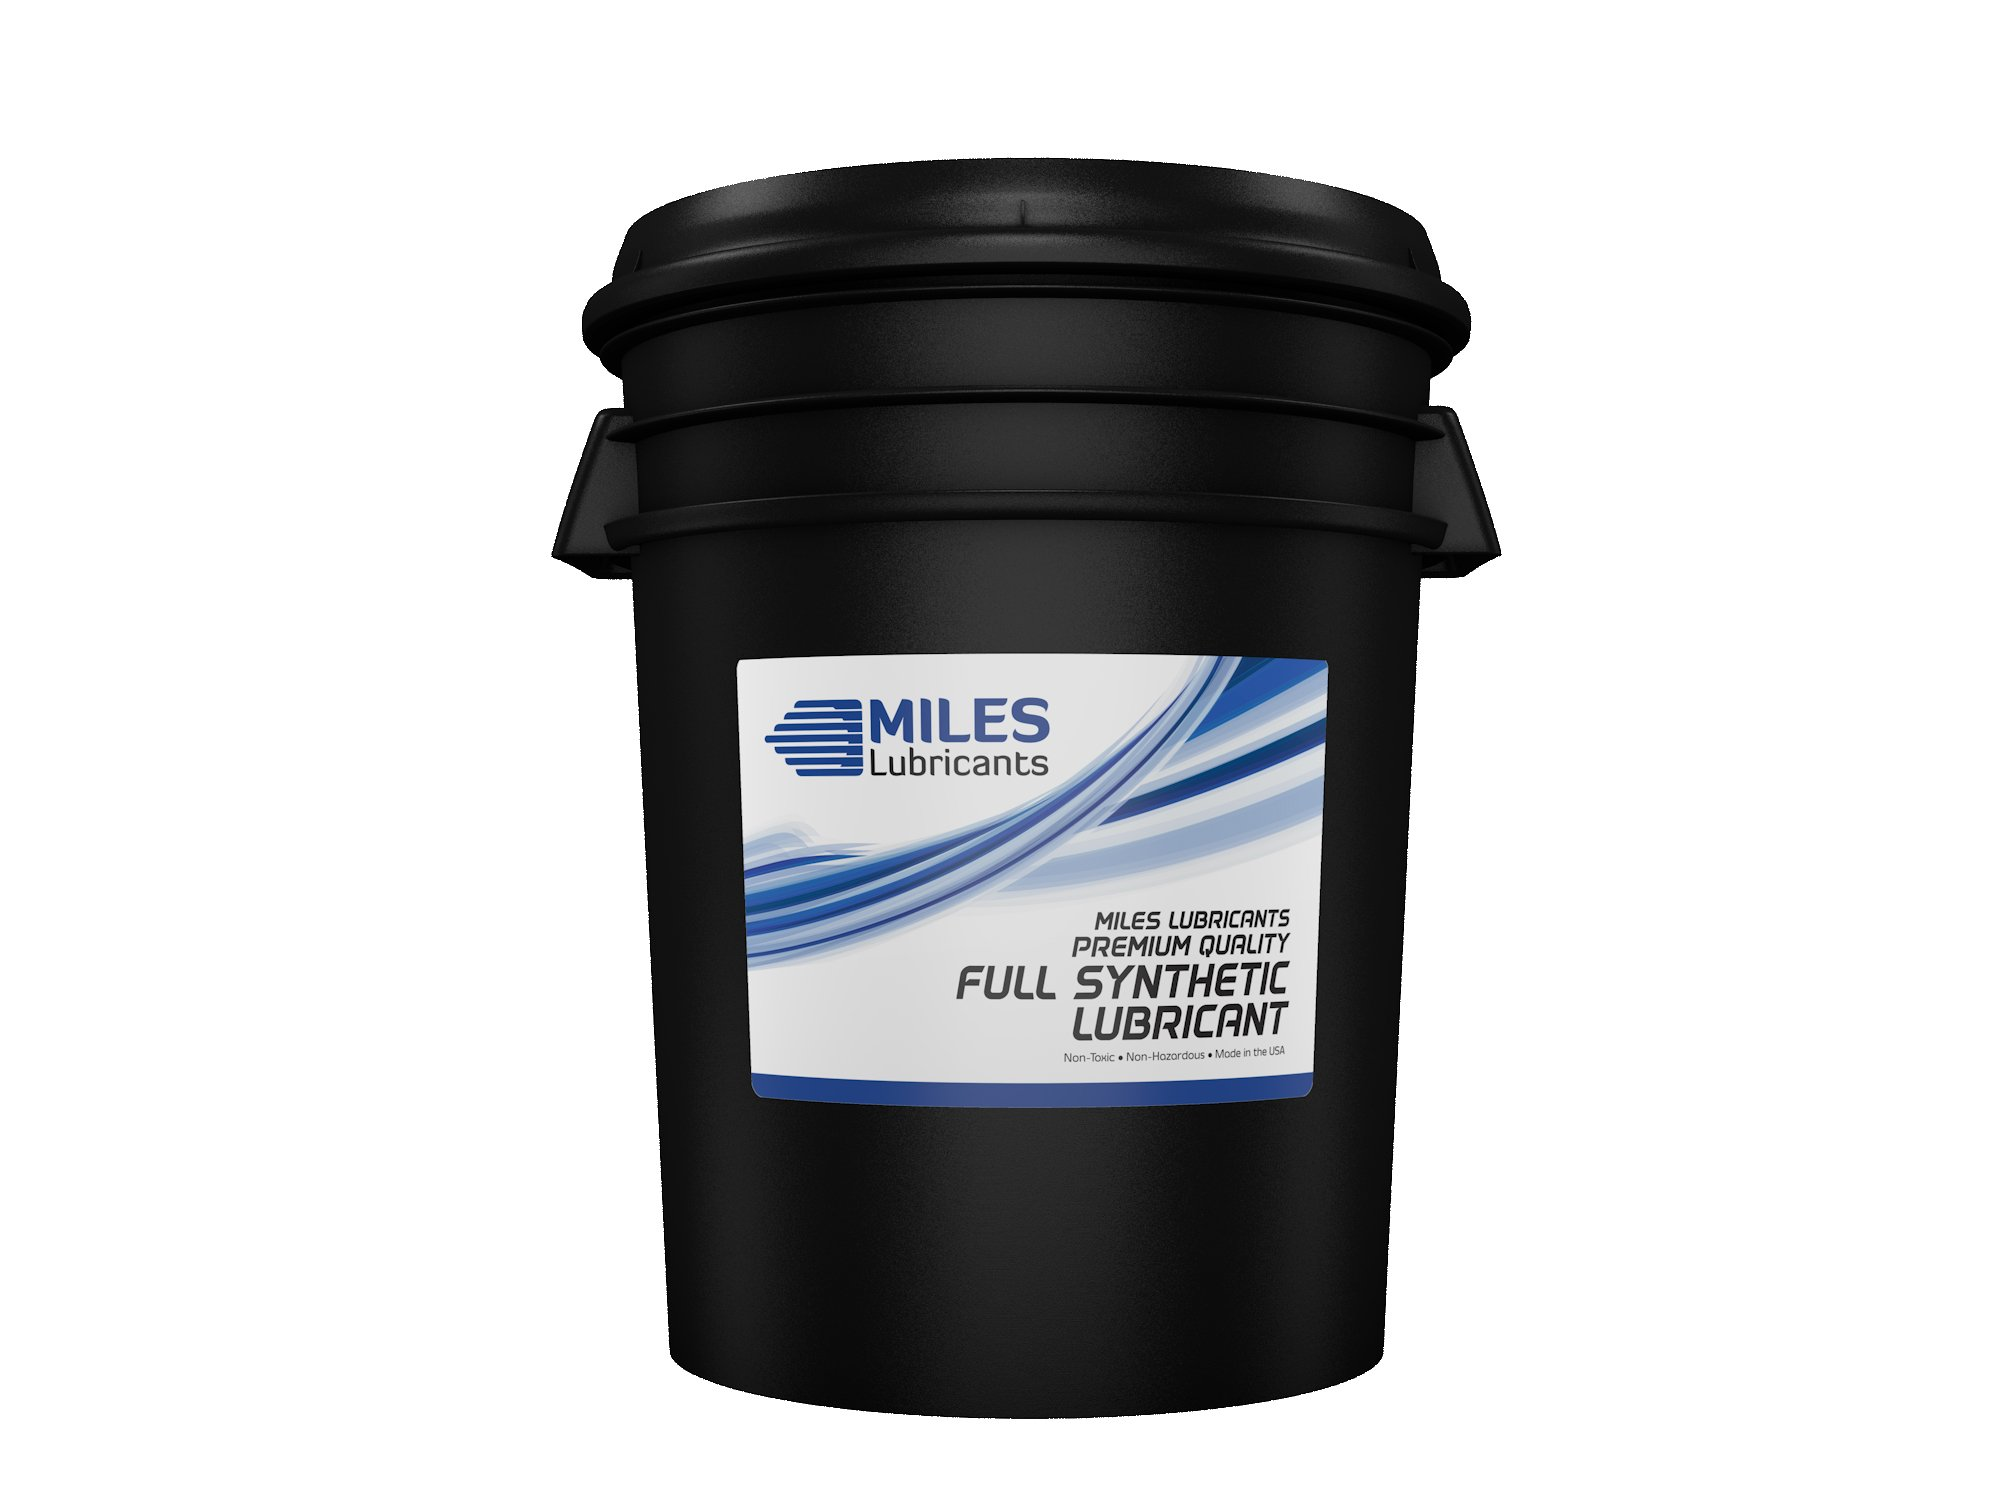 Miles Sxr Comp Oil ISO 46 Full Synthethic Pao Based Rotary Compressor Fluid 5 Gallon Pail